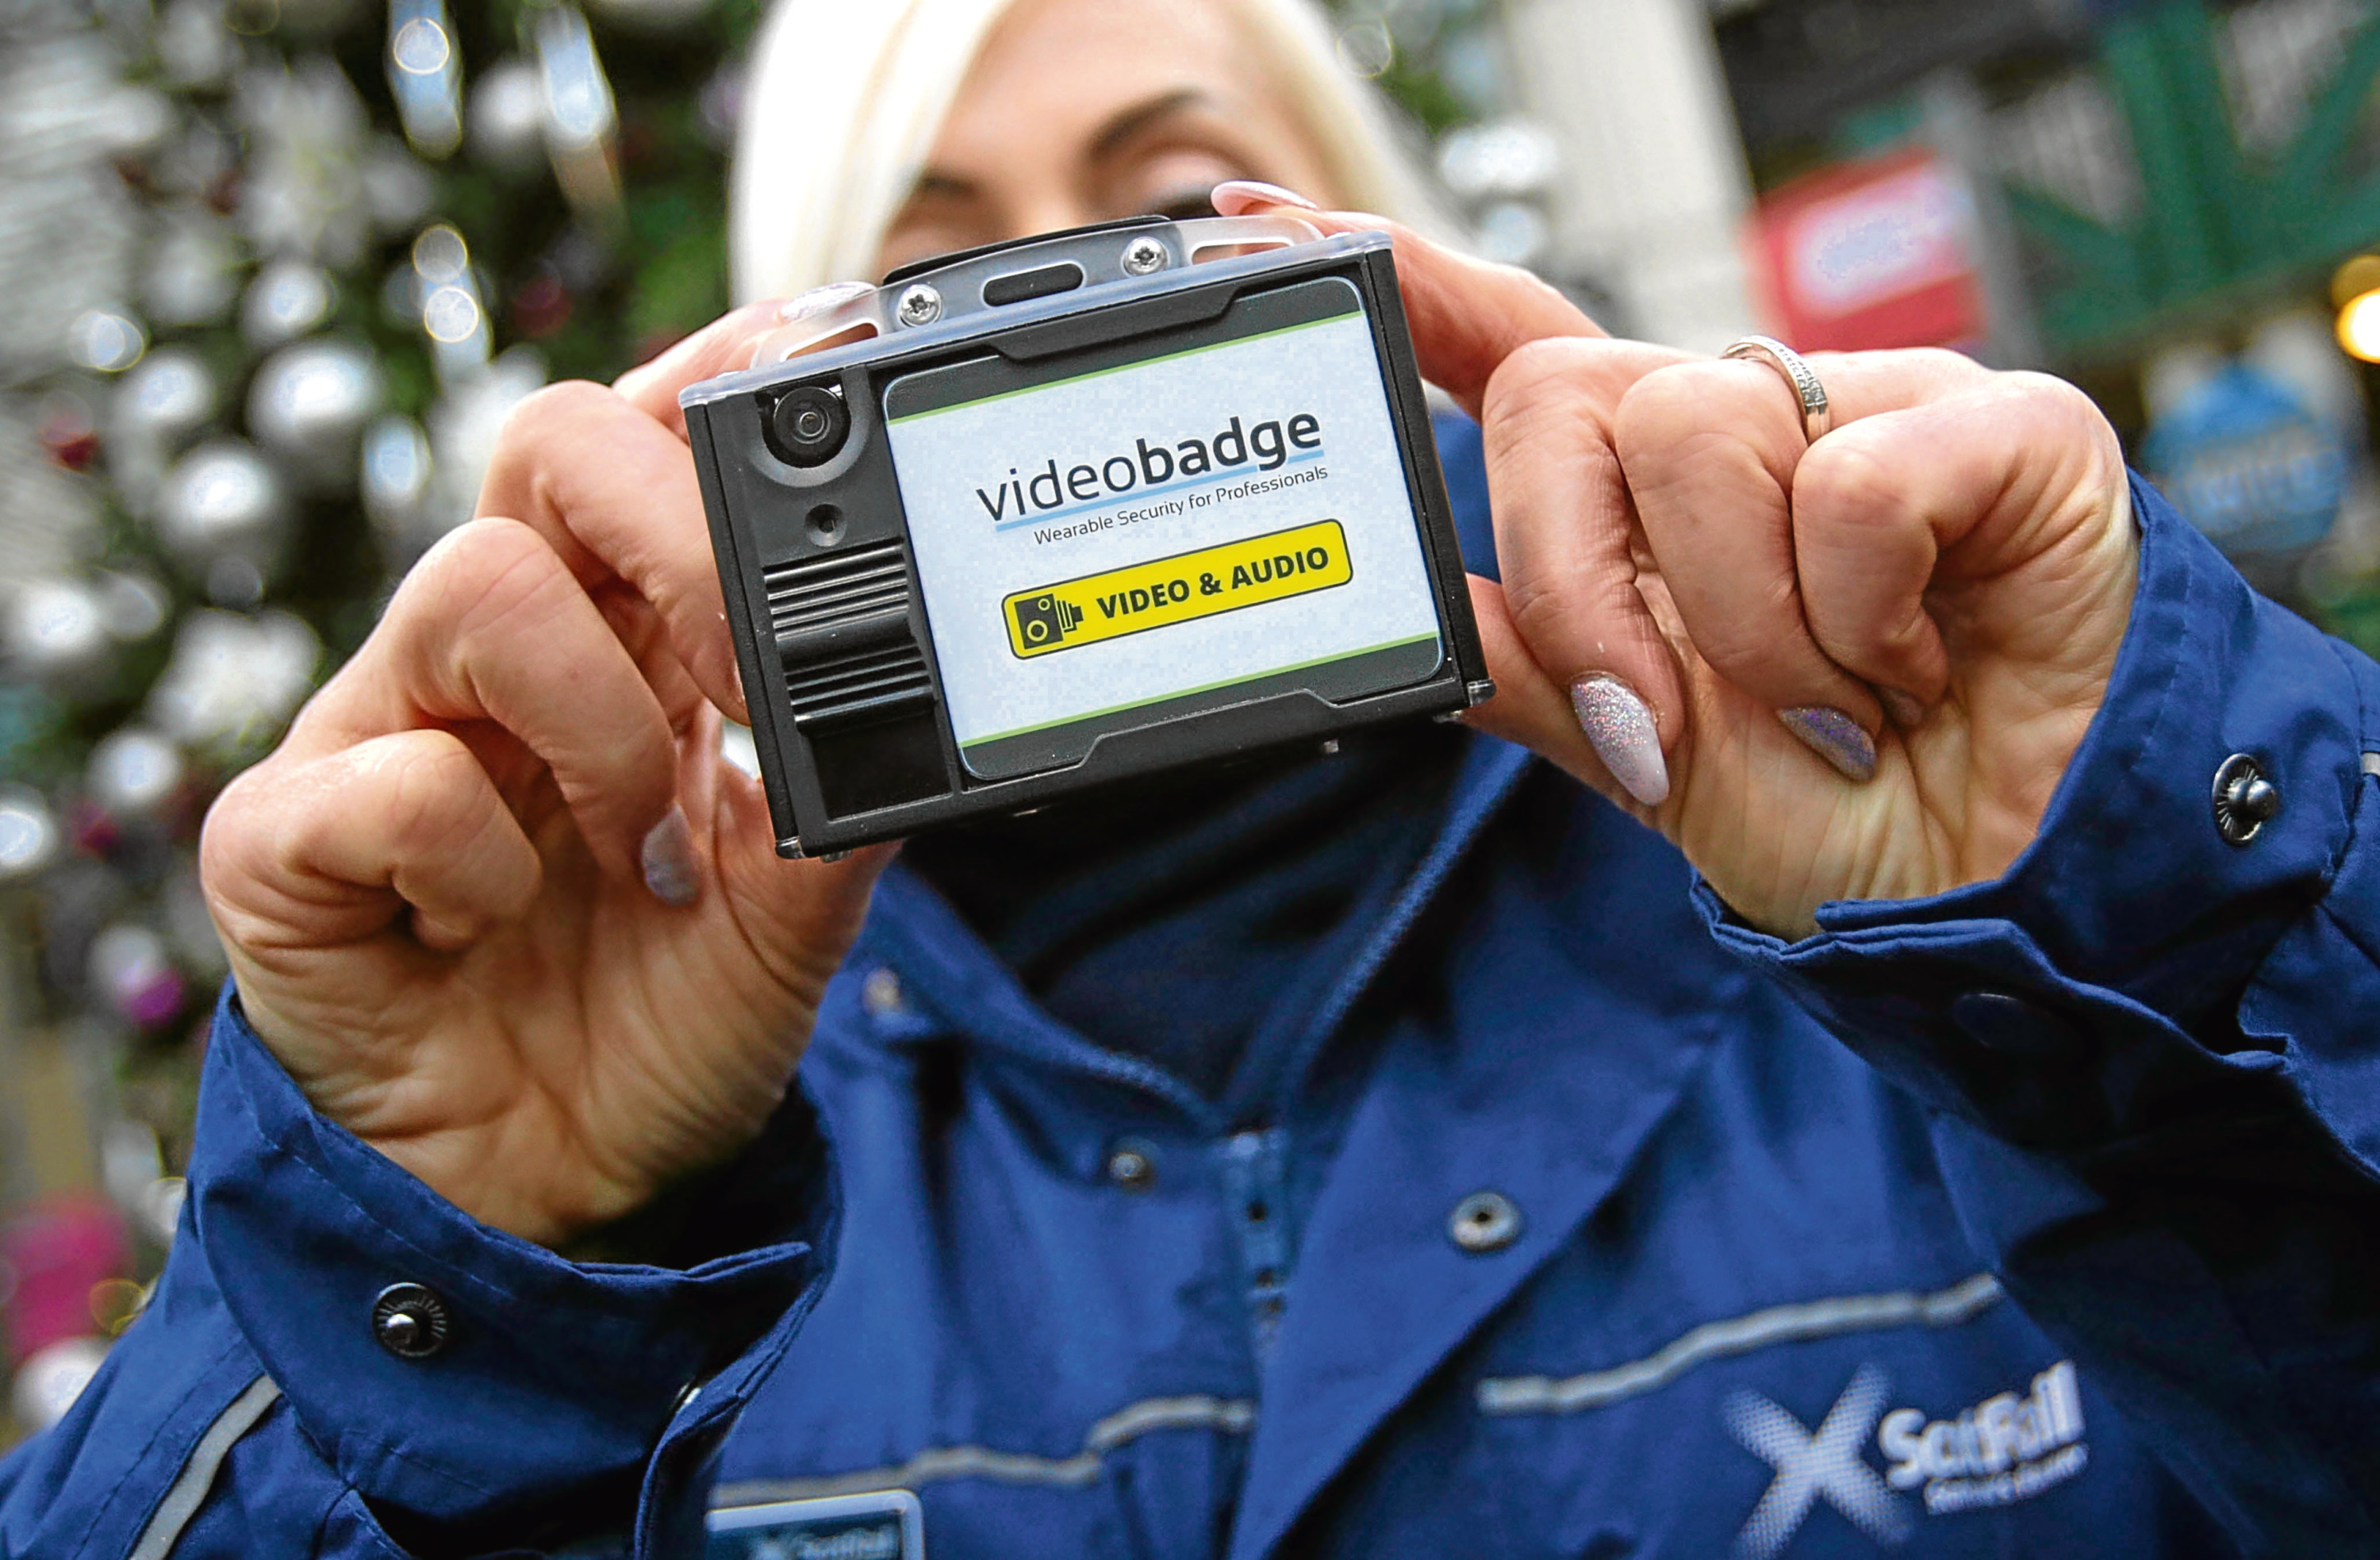 A member of ScotRail staff holds a new body-worn CCTV camera at Waverley Station, Edinburgh, as it was announced that staff are to carry them while on trains. (David Cheskin/PA Wire)